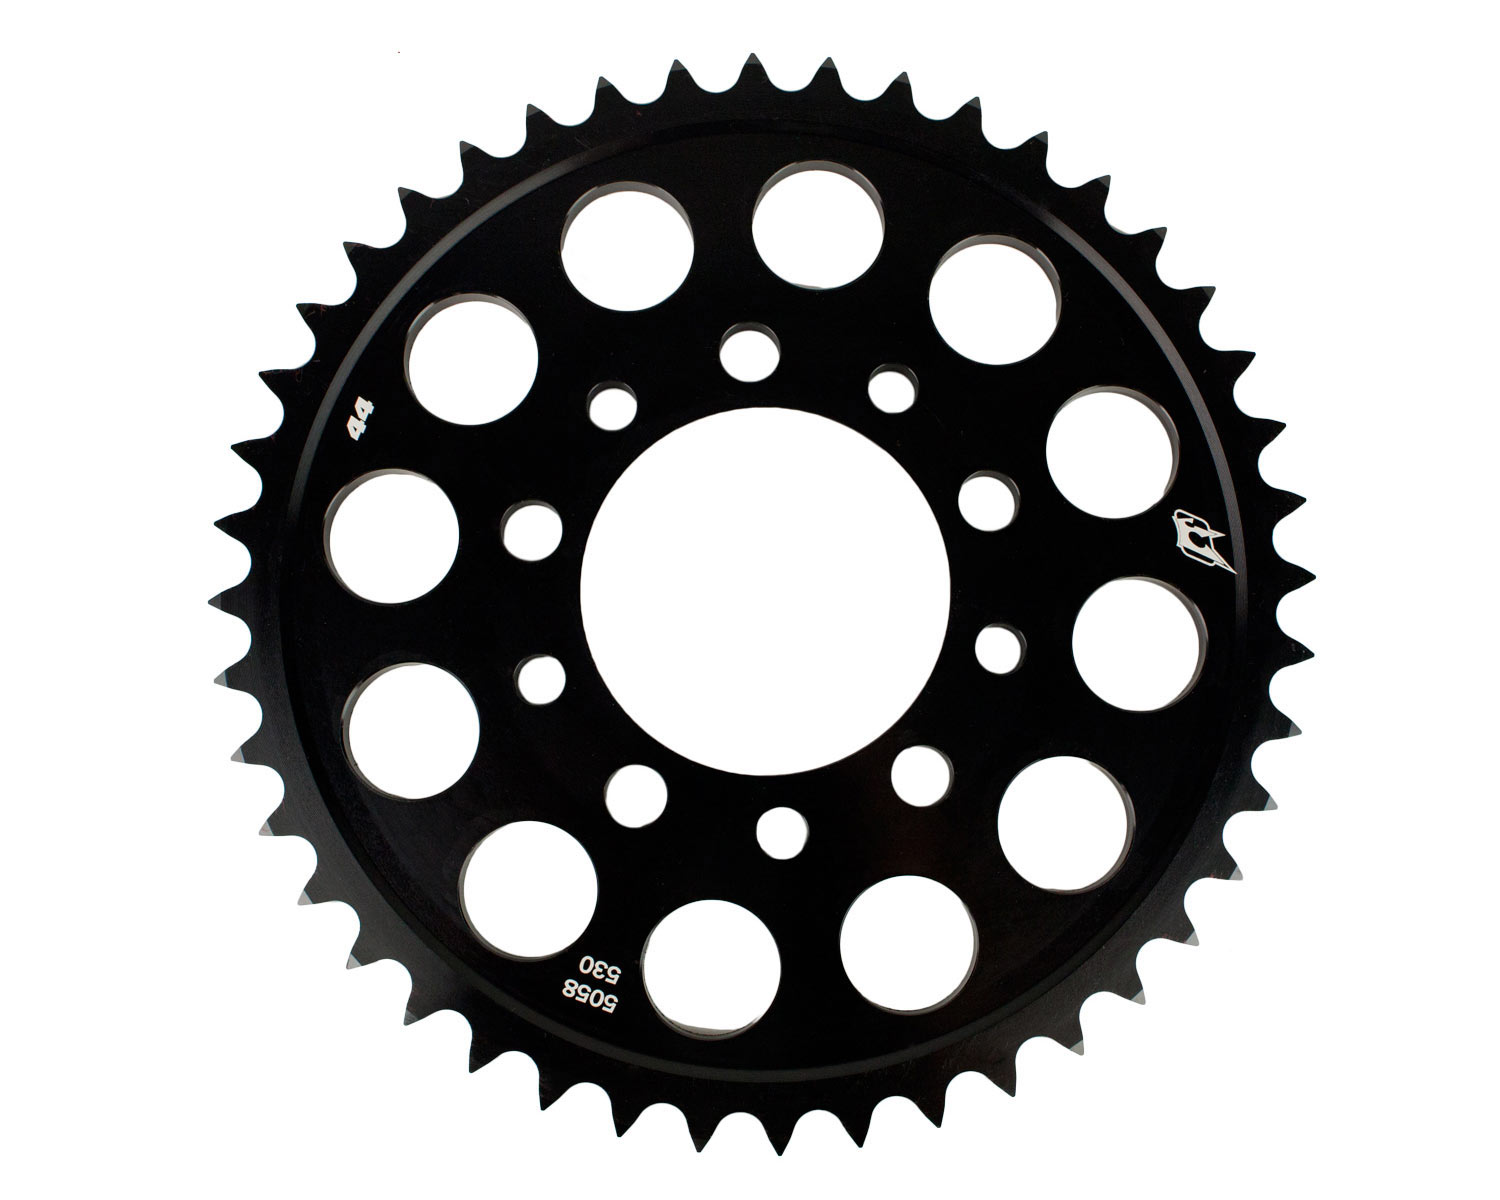 Gears clipart motorcycle gear. Free sprocket cliparts download